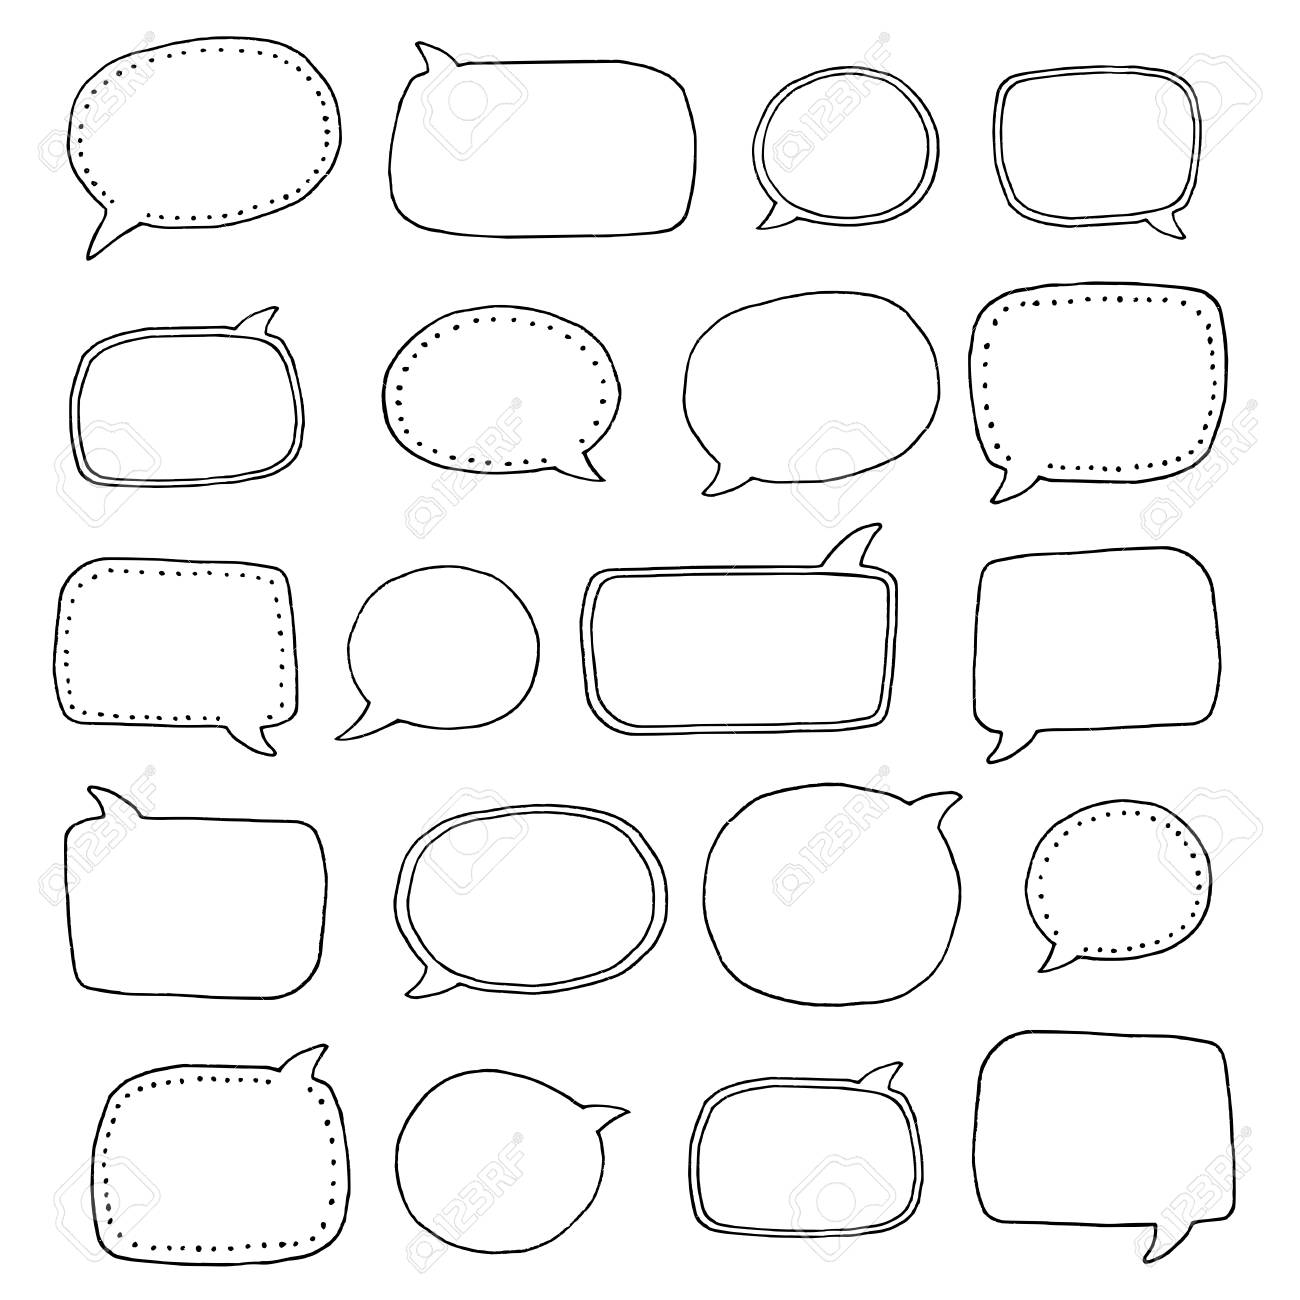 Collection of various hand drawn speech bubbles - 88404890